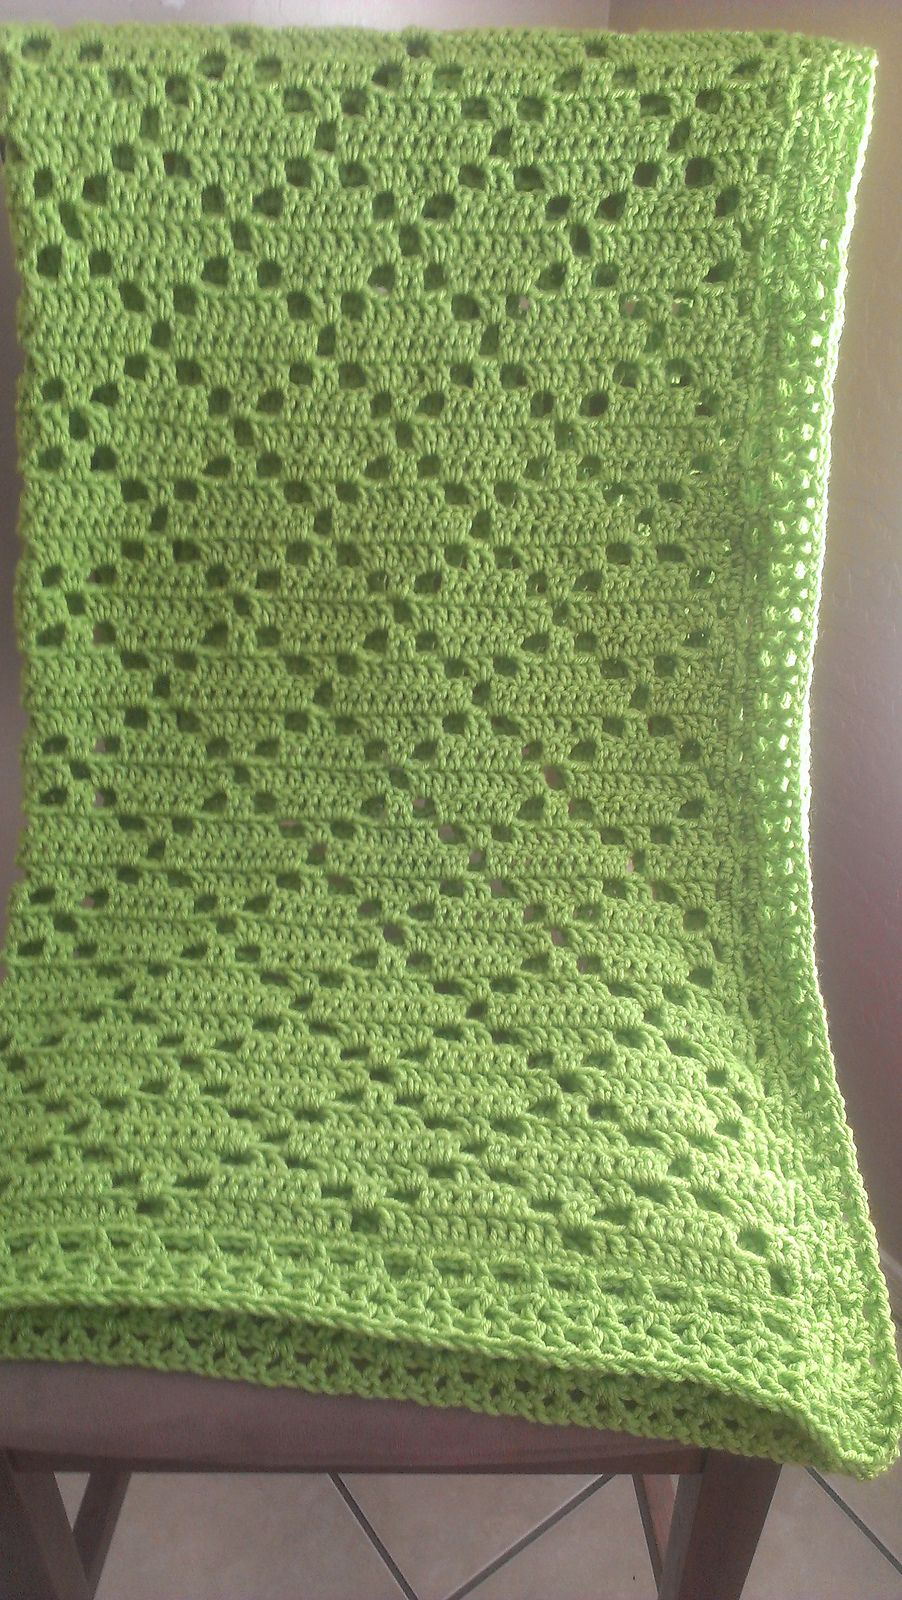 Diamond Lace Baby Aghan pattern by the Jewell\'s Handmades | Ravelry ...